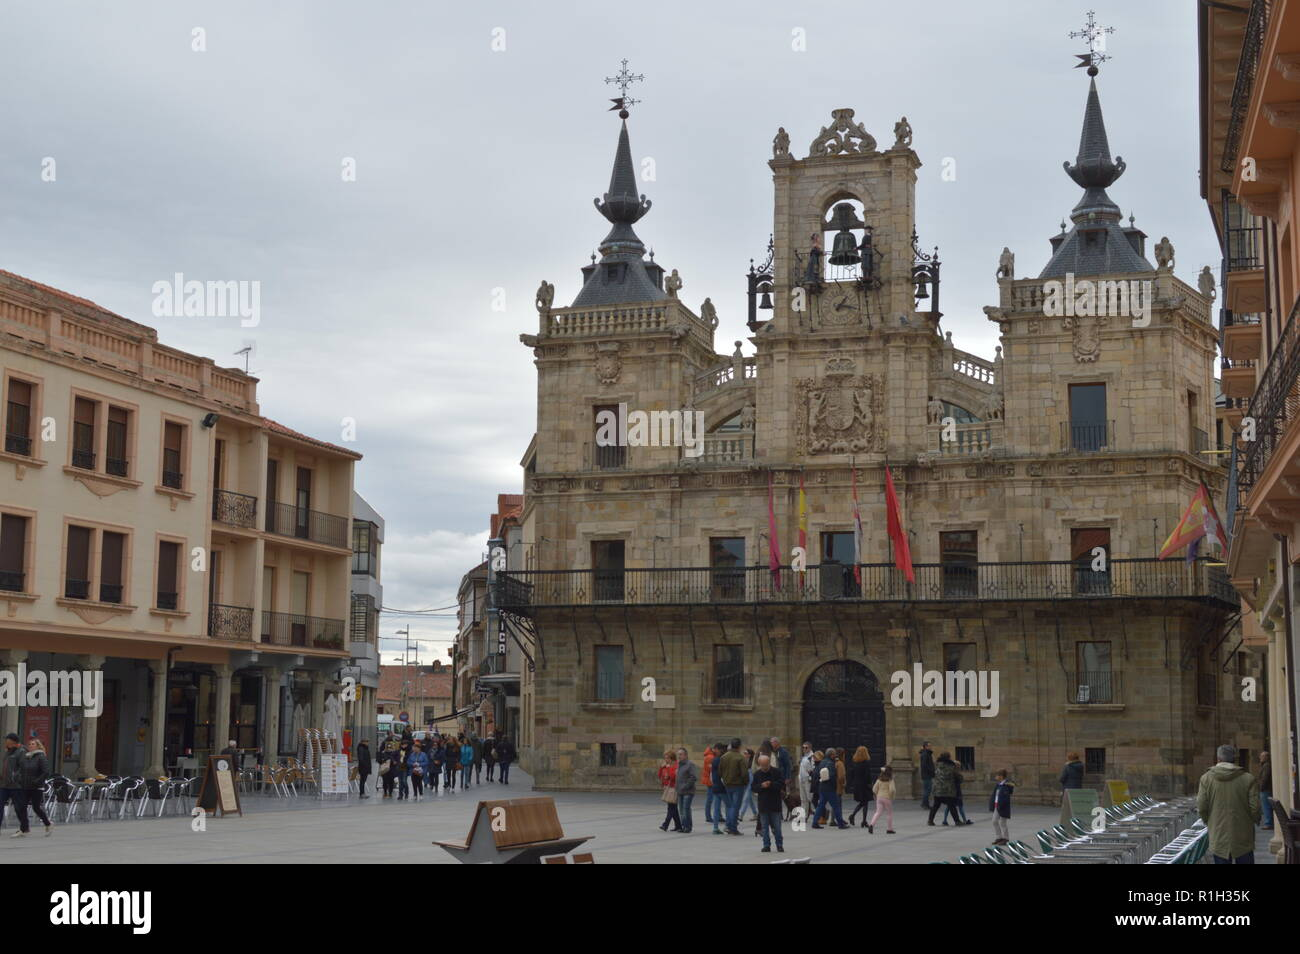 Main Facade Of The Town Hall And Main Square On A Cloudy Day In Astorga. Architecture, History, Camino De Santiago, Travel. November 1, 2018. Astorga, Stock Photo